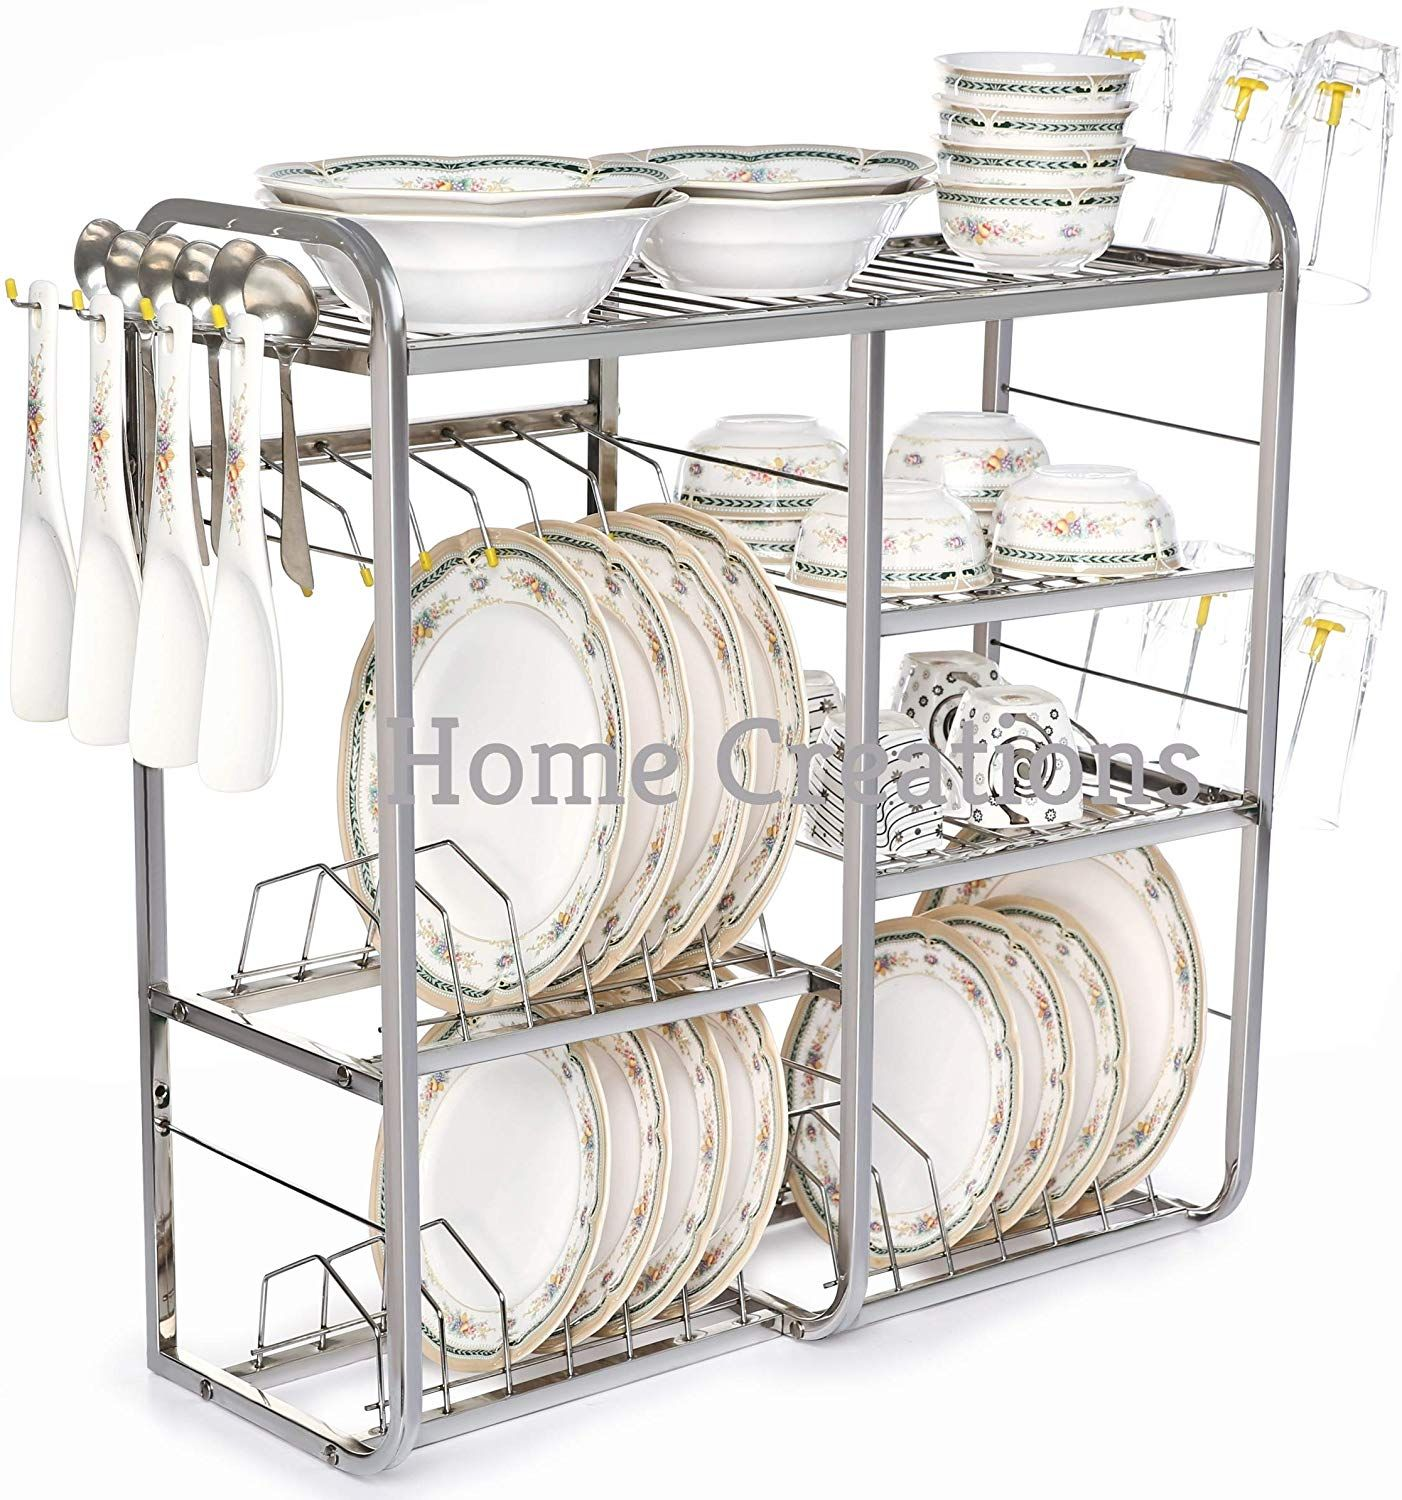 Home Creations 24 Inch Wall Mount Kitchen Dish Rack Plate Cutlery Stand Kitchen Storage Rack Kitchen Utensil Rack Modern Kitchen Storage